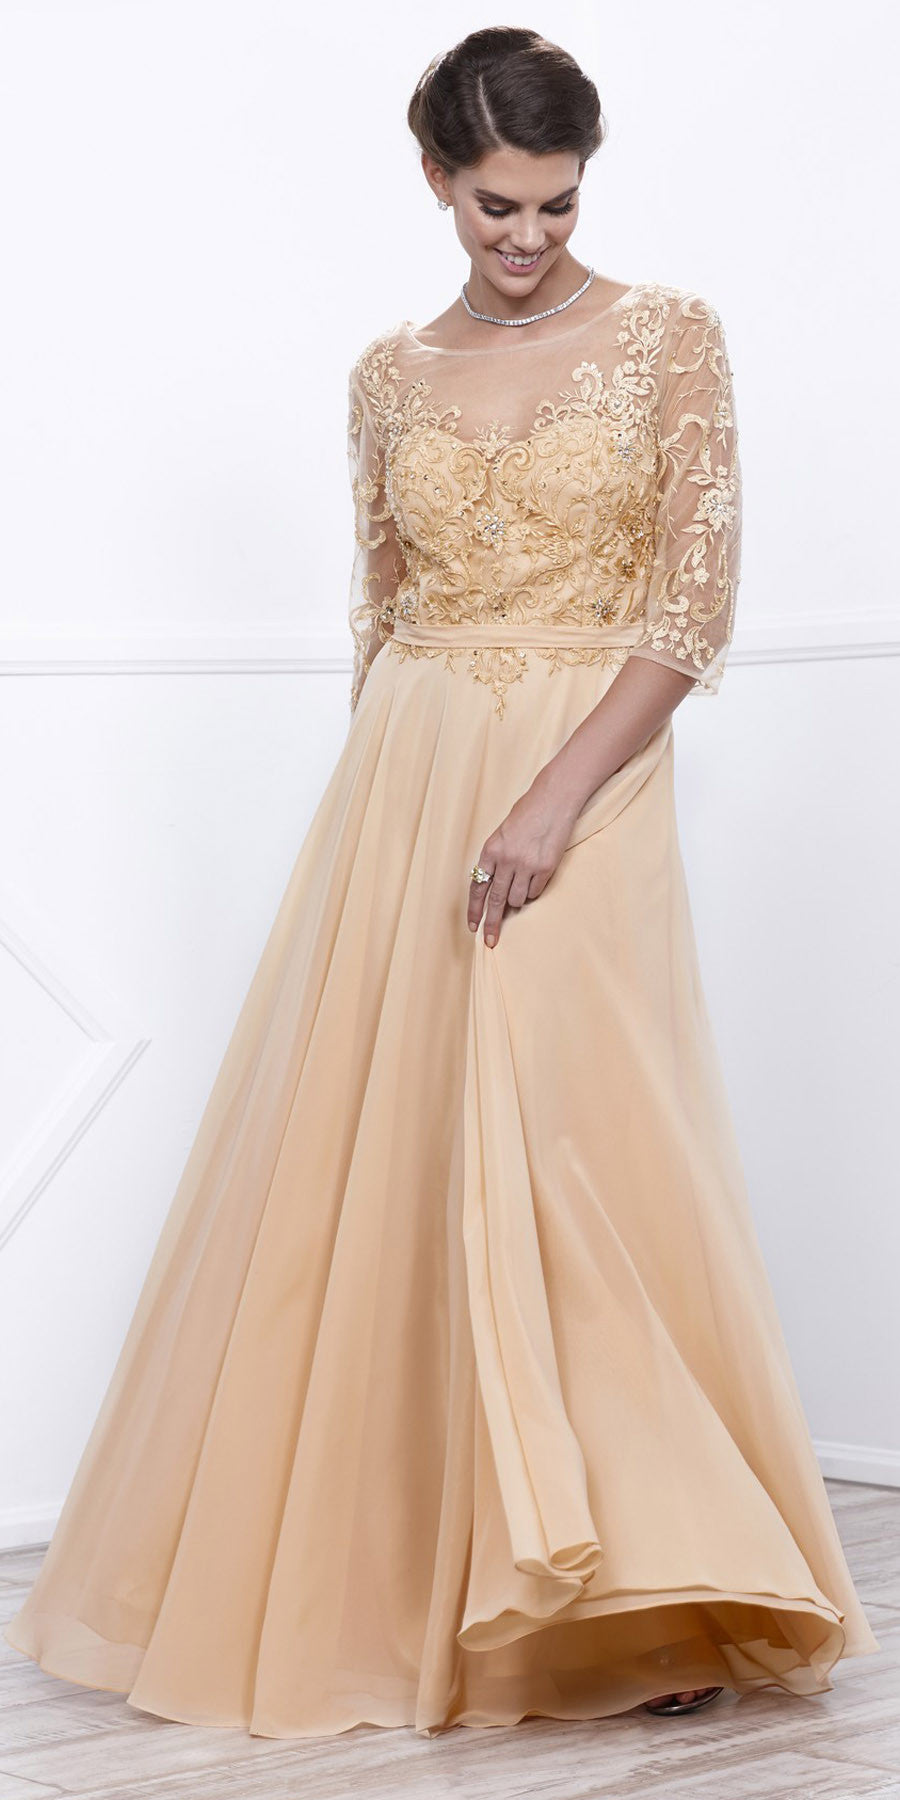 Gold Sheer Quarter Sleeves Illusion Embroidered Formal Dress